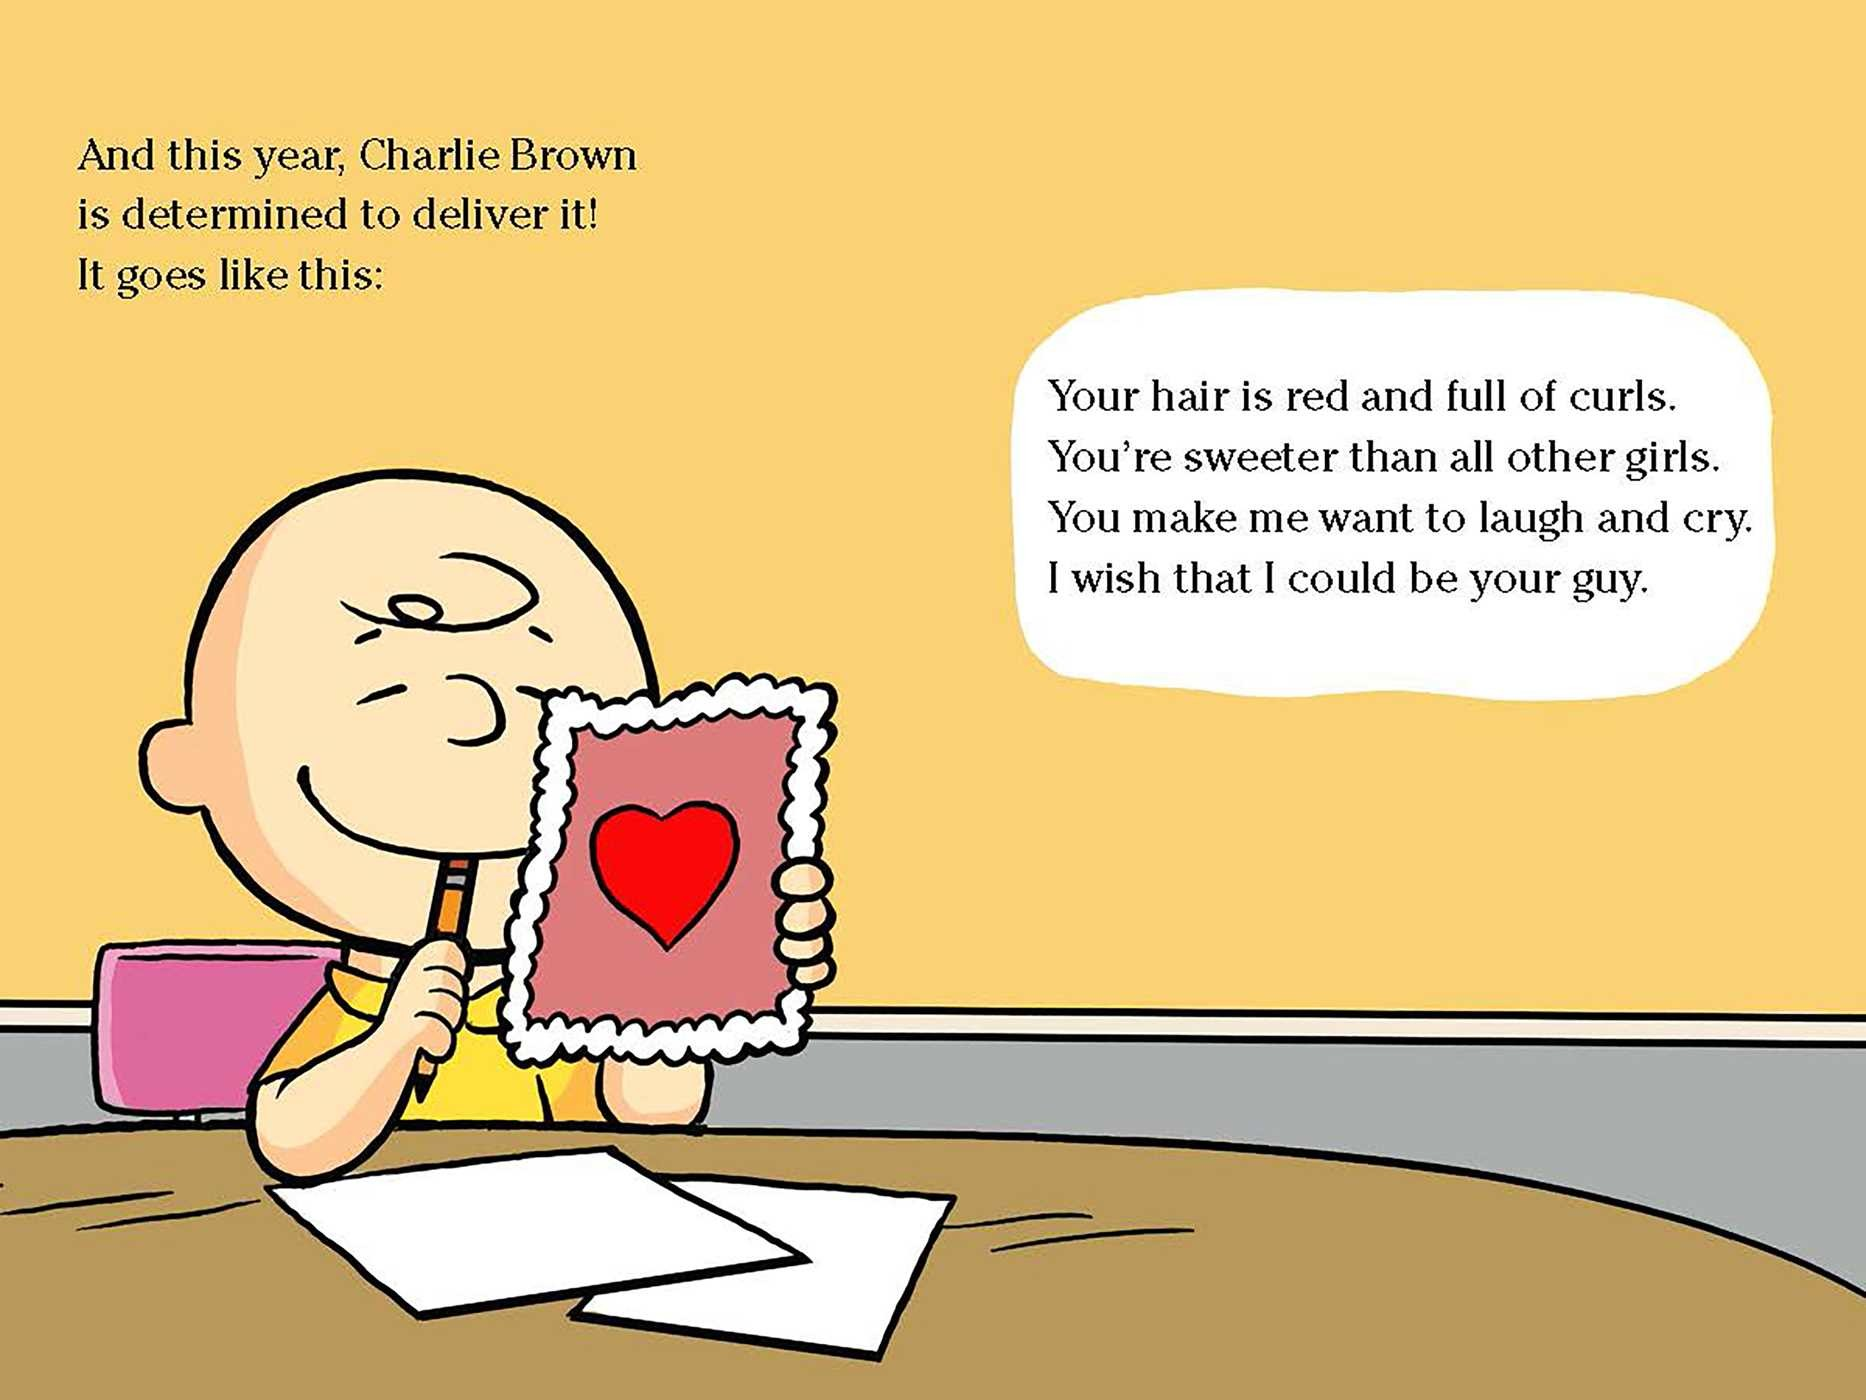 Happy valentines day charlie brown 9781481441339.in02